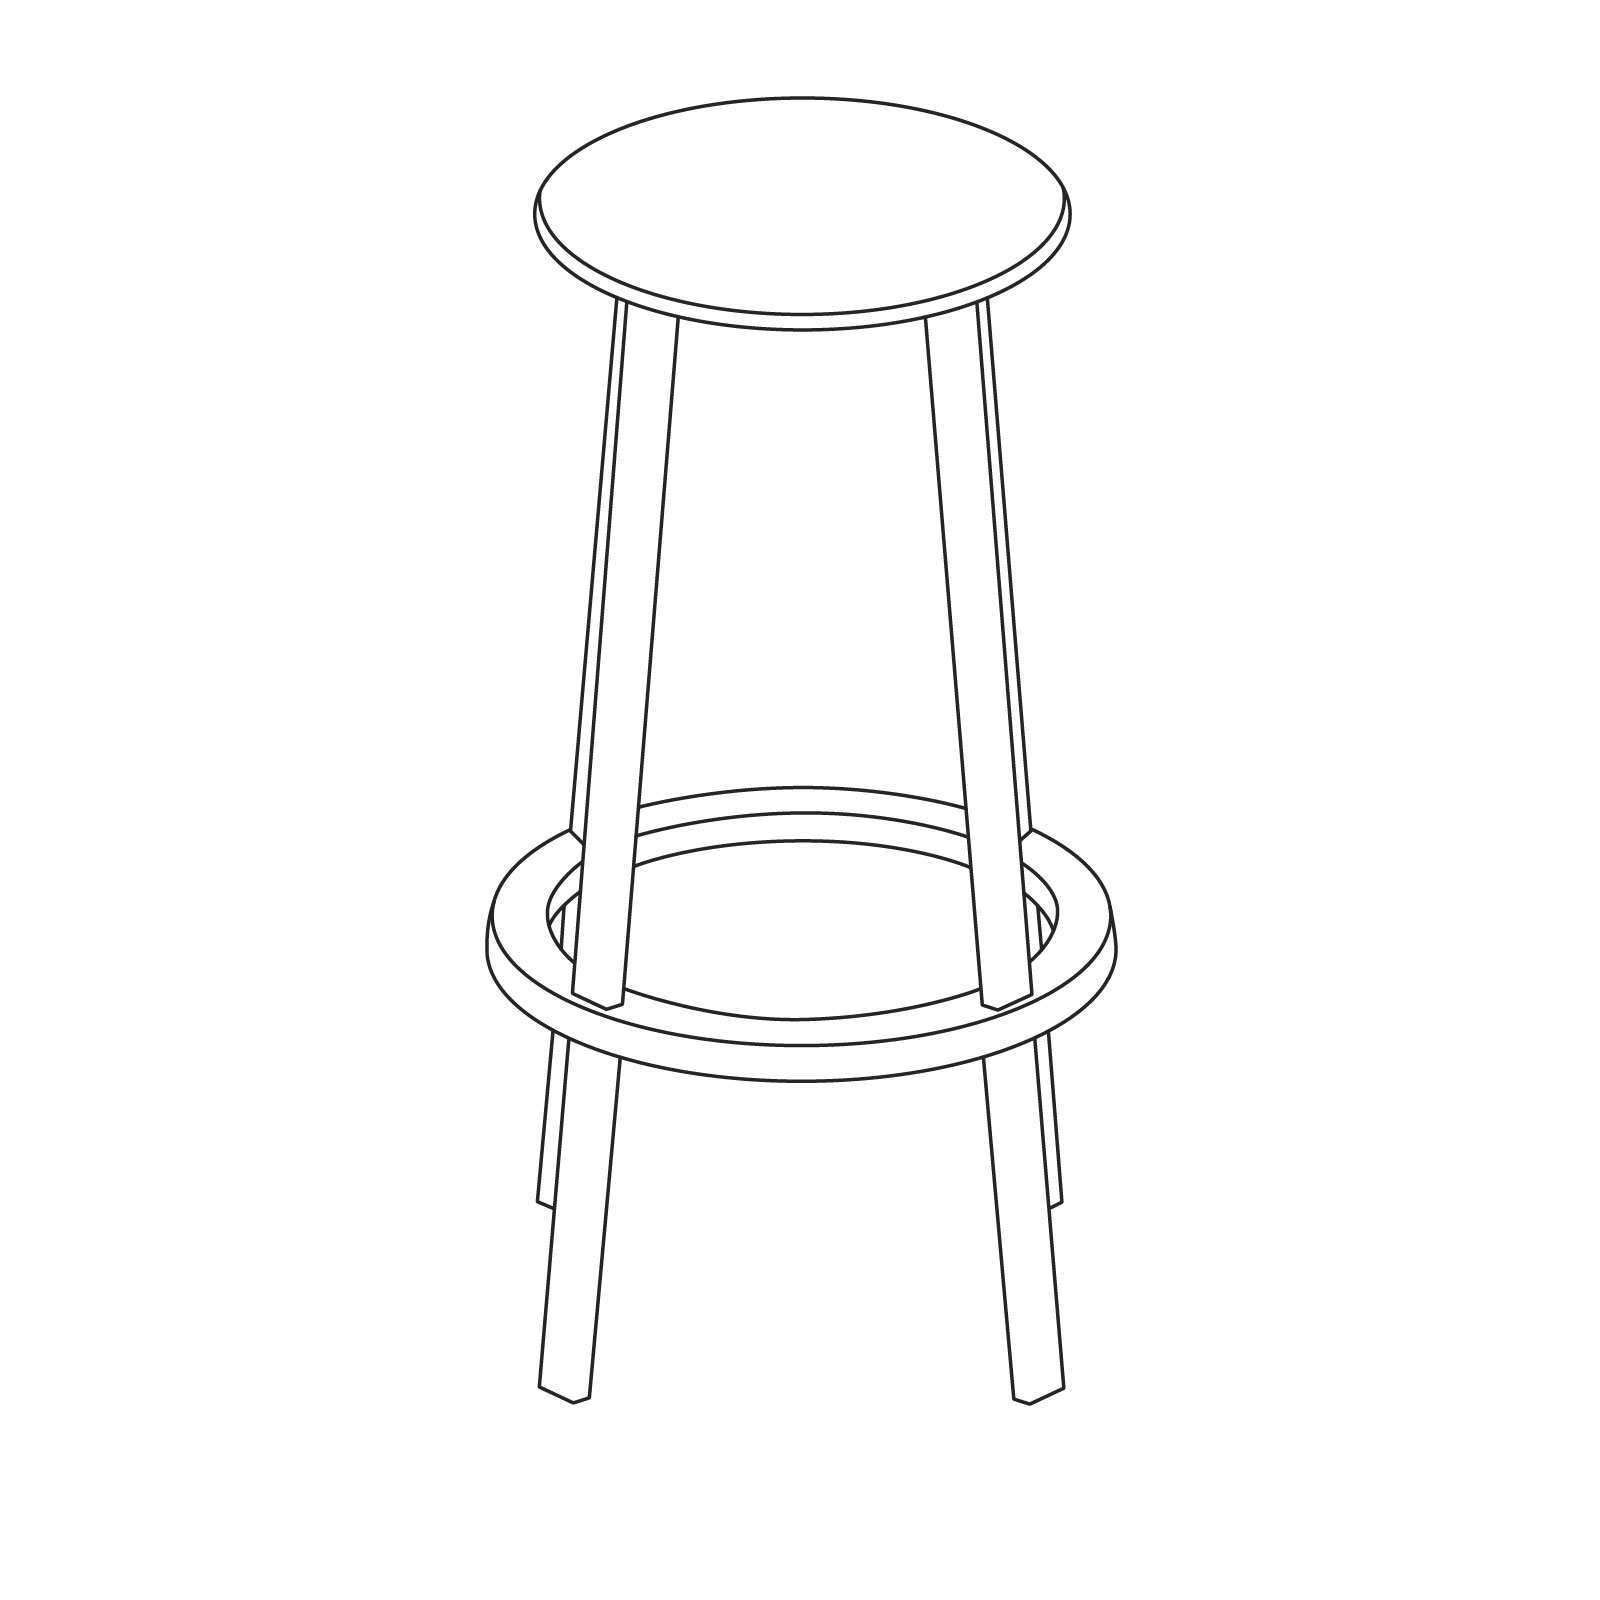 A line drawing of Revolver Stool–Bar Height.